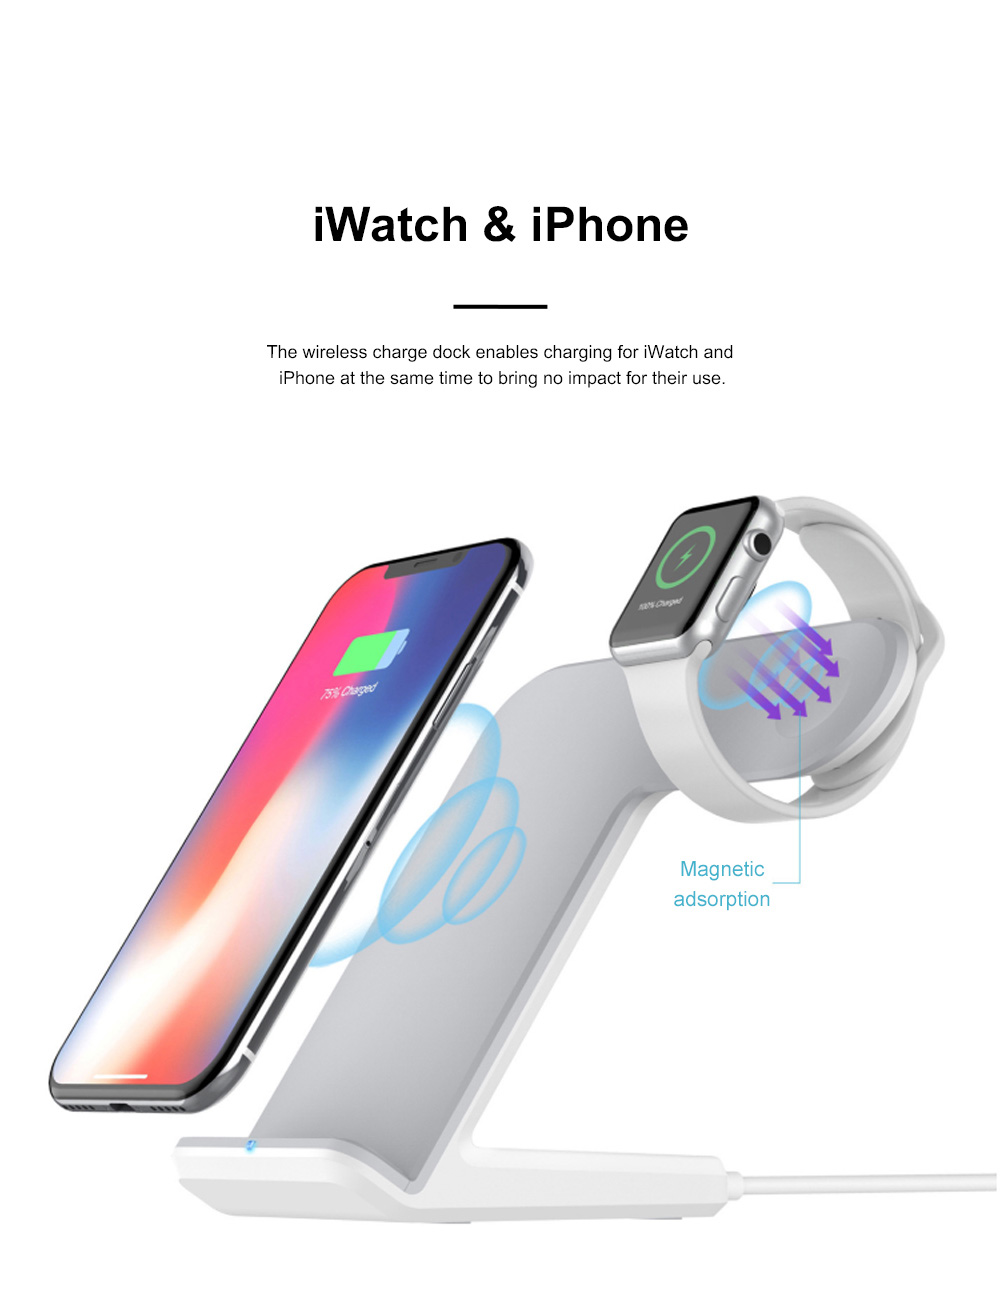 Vertical Wireless Charger Upright Quick-acting Two in One Recharger Compatible for iPhone X iWatch Samsung Wireless Charge Dock 3